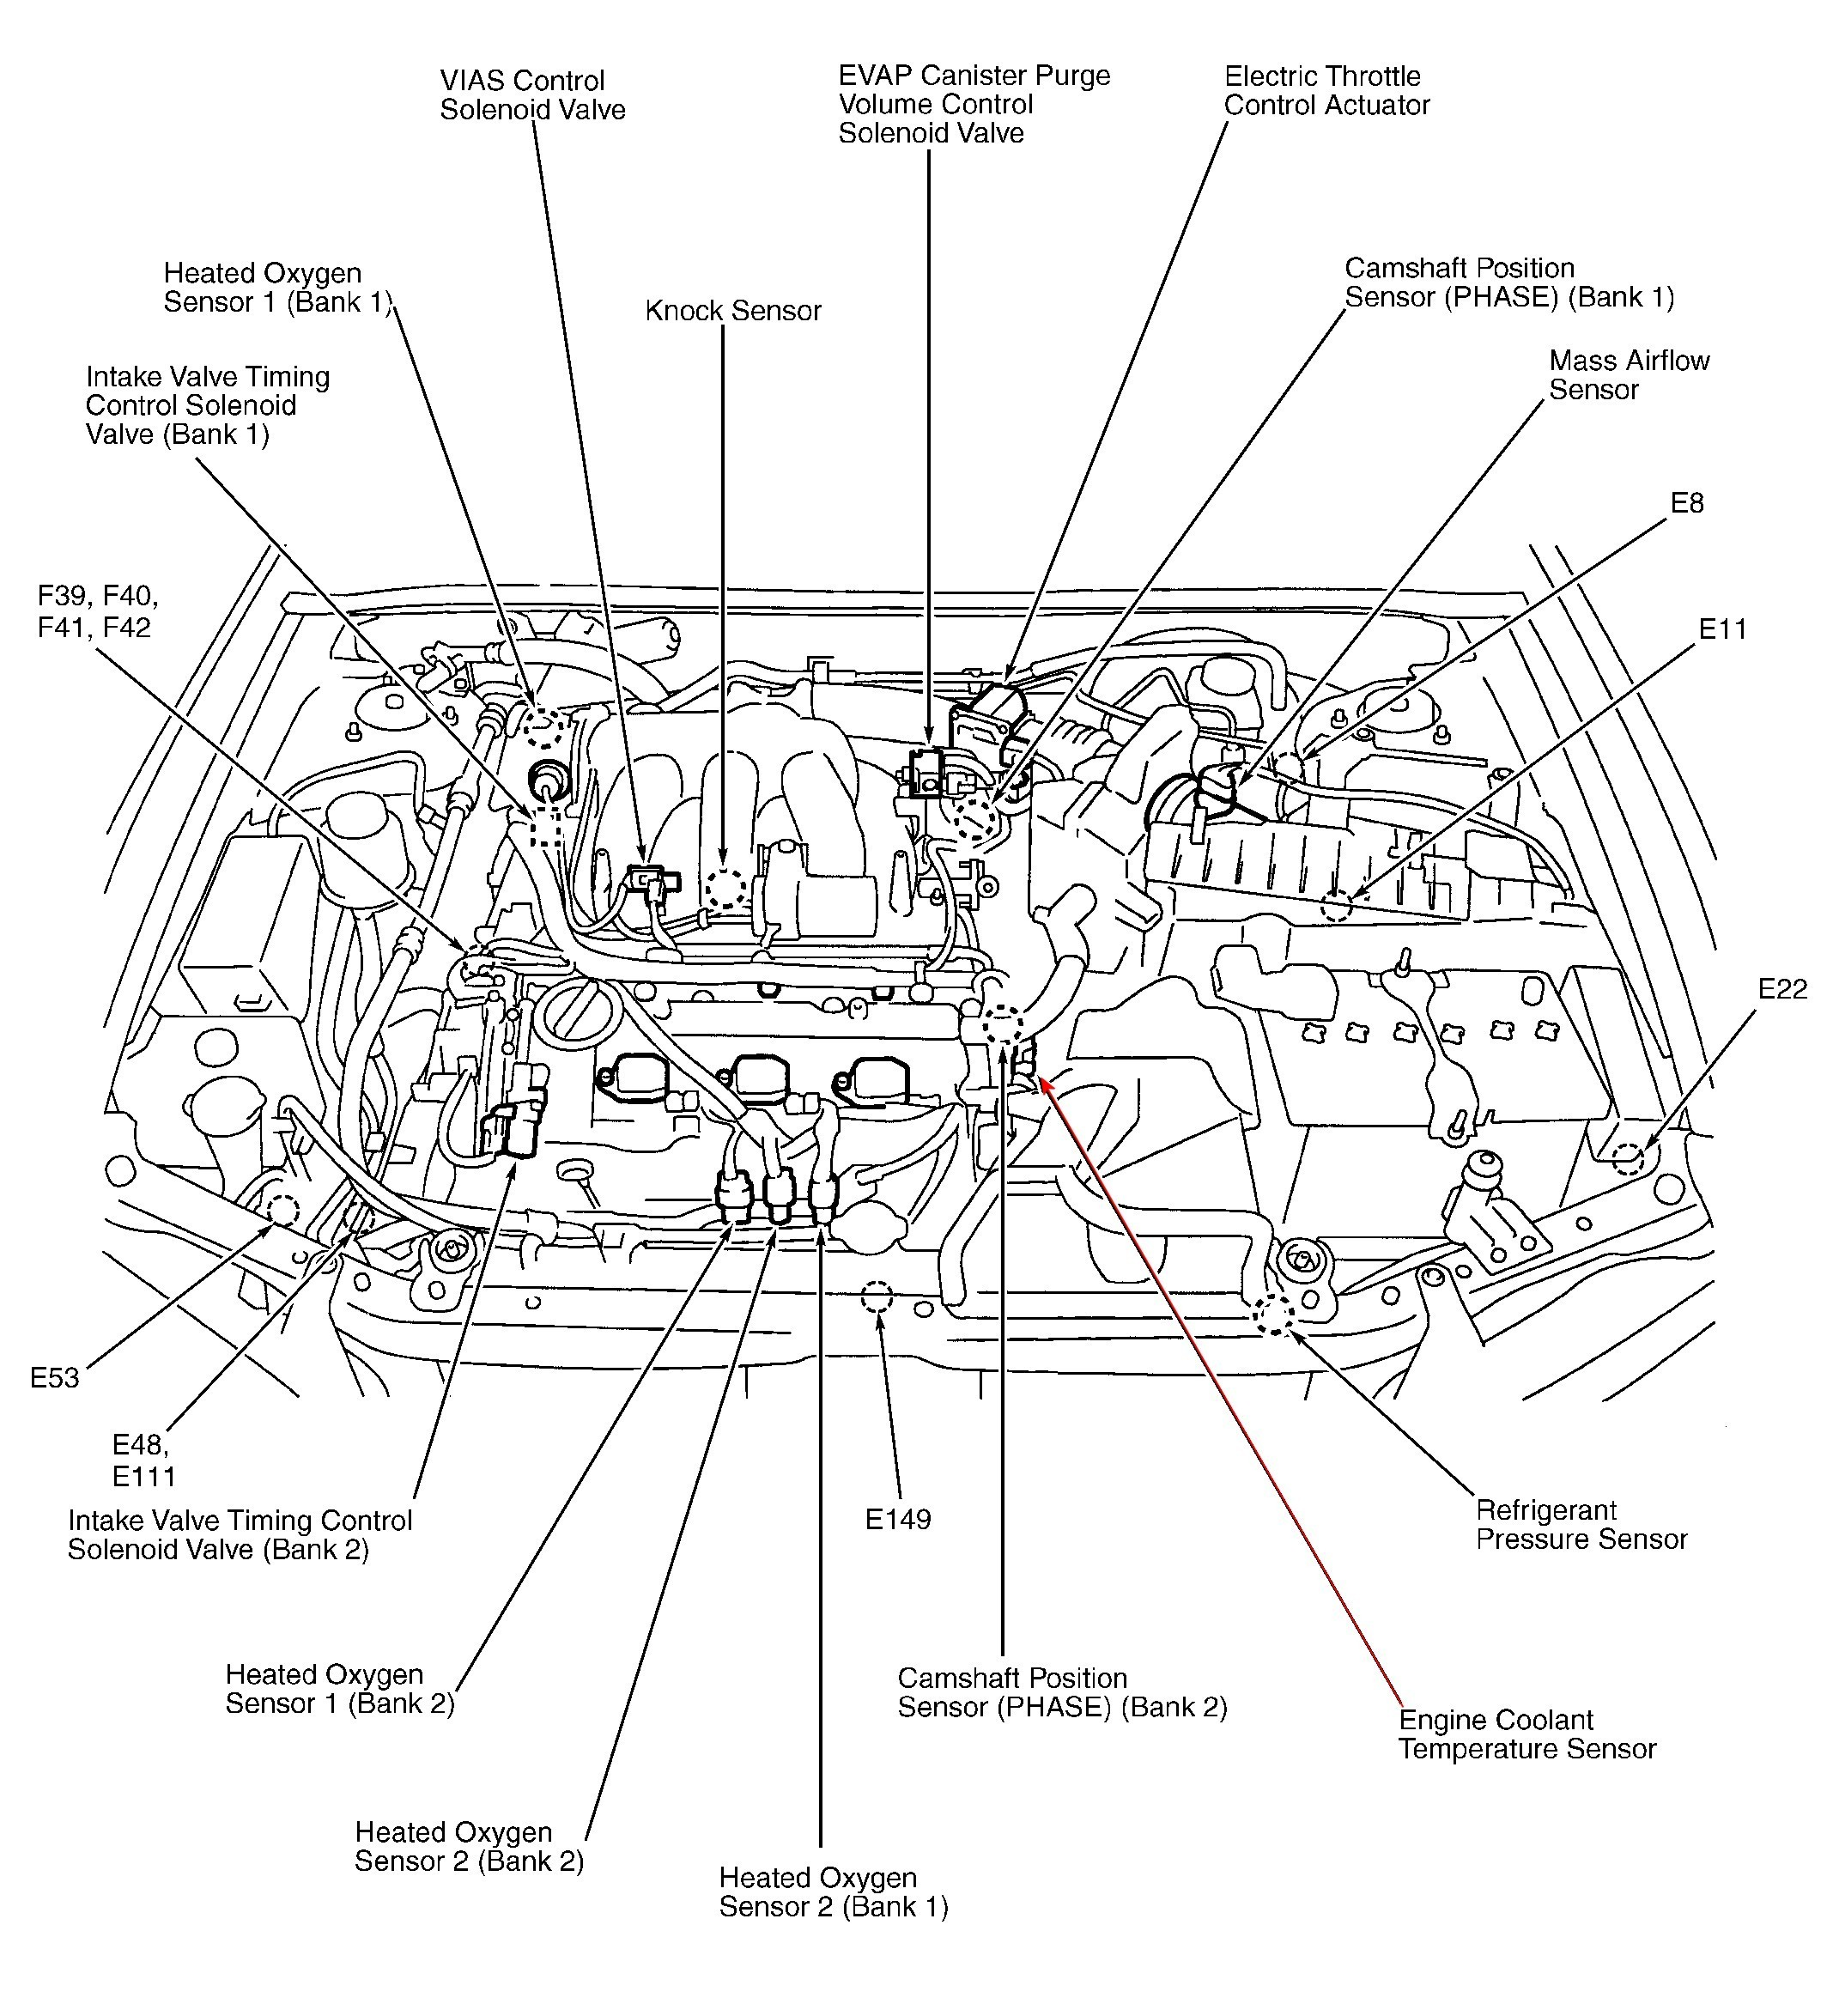 wiring diagram for 2008 dodge nitro switch diagram u2022 rh 140 82 24 126  2007 Dodge Nitro Wiper Motor Diagram 2007 Dodge Nitro Wiper Motor Diagram